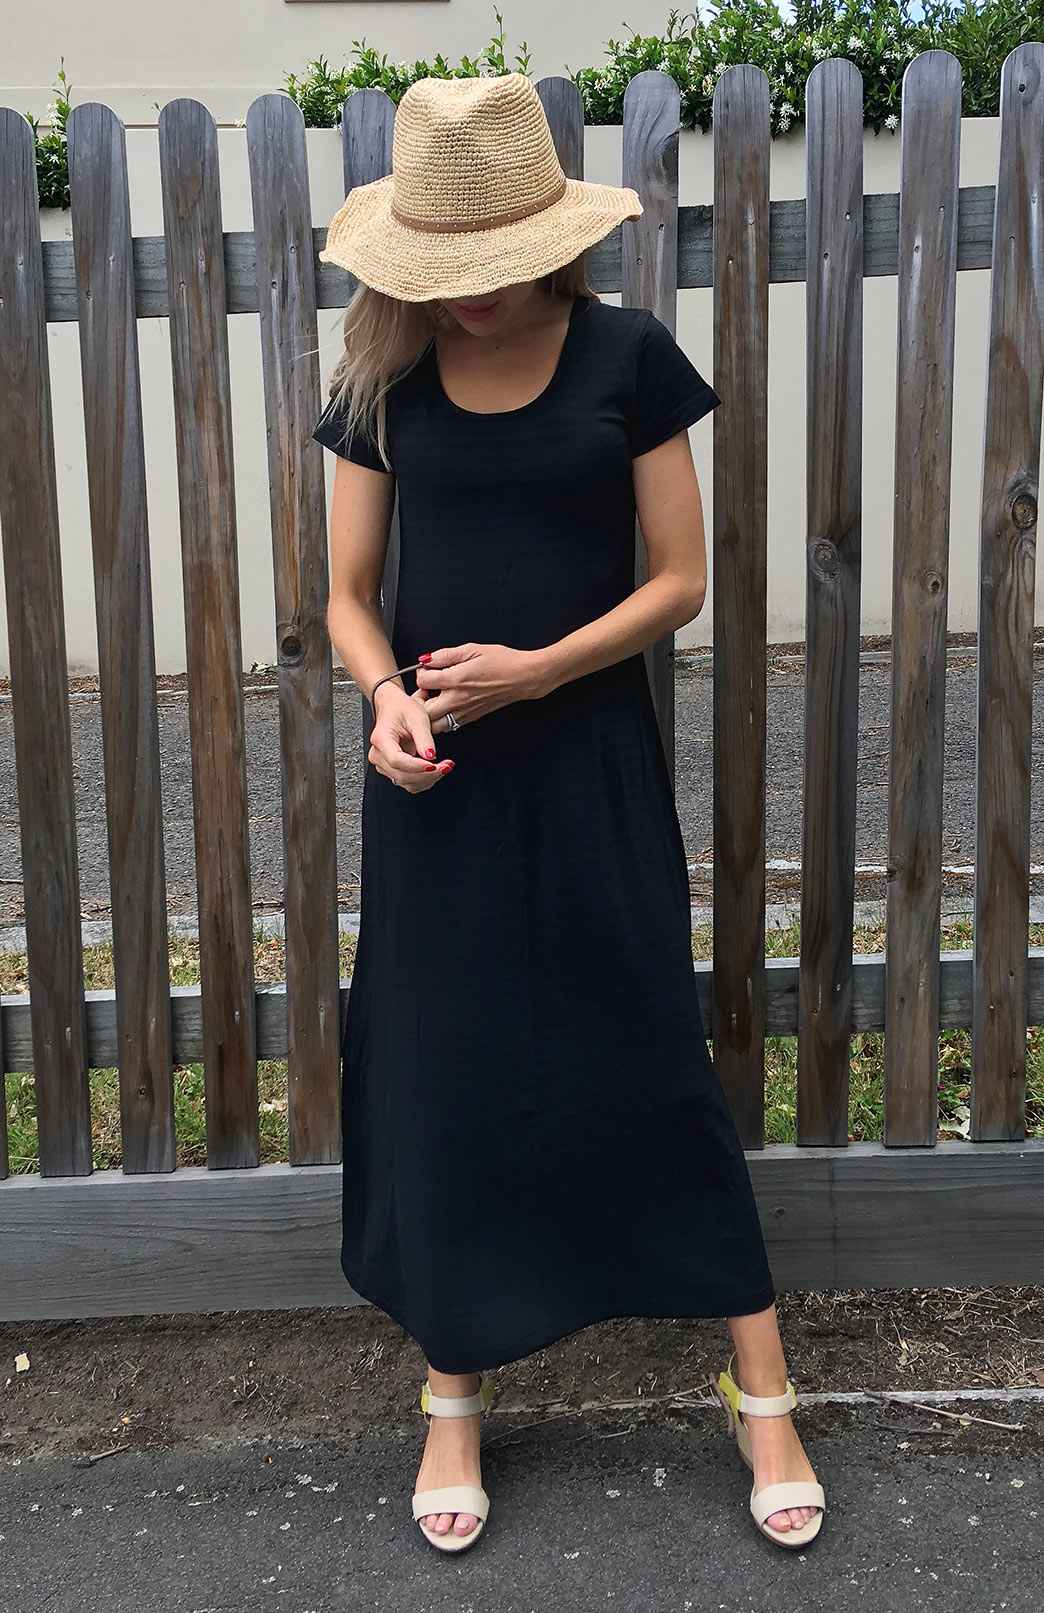 T-Shirt Maxi Dress - Women's Dark Grey Stripe Merino Wool Modal Blend T-Shirt Maxi Dress - Smitten Merino Tasmania Australia